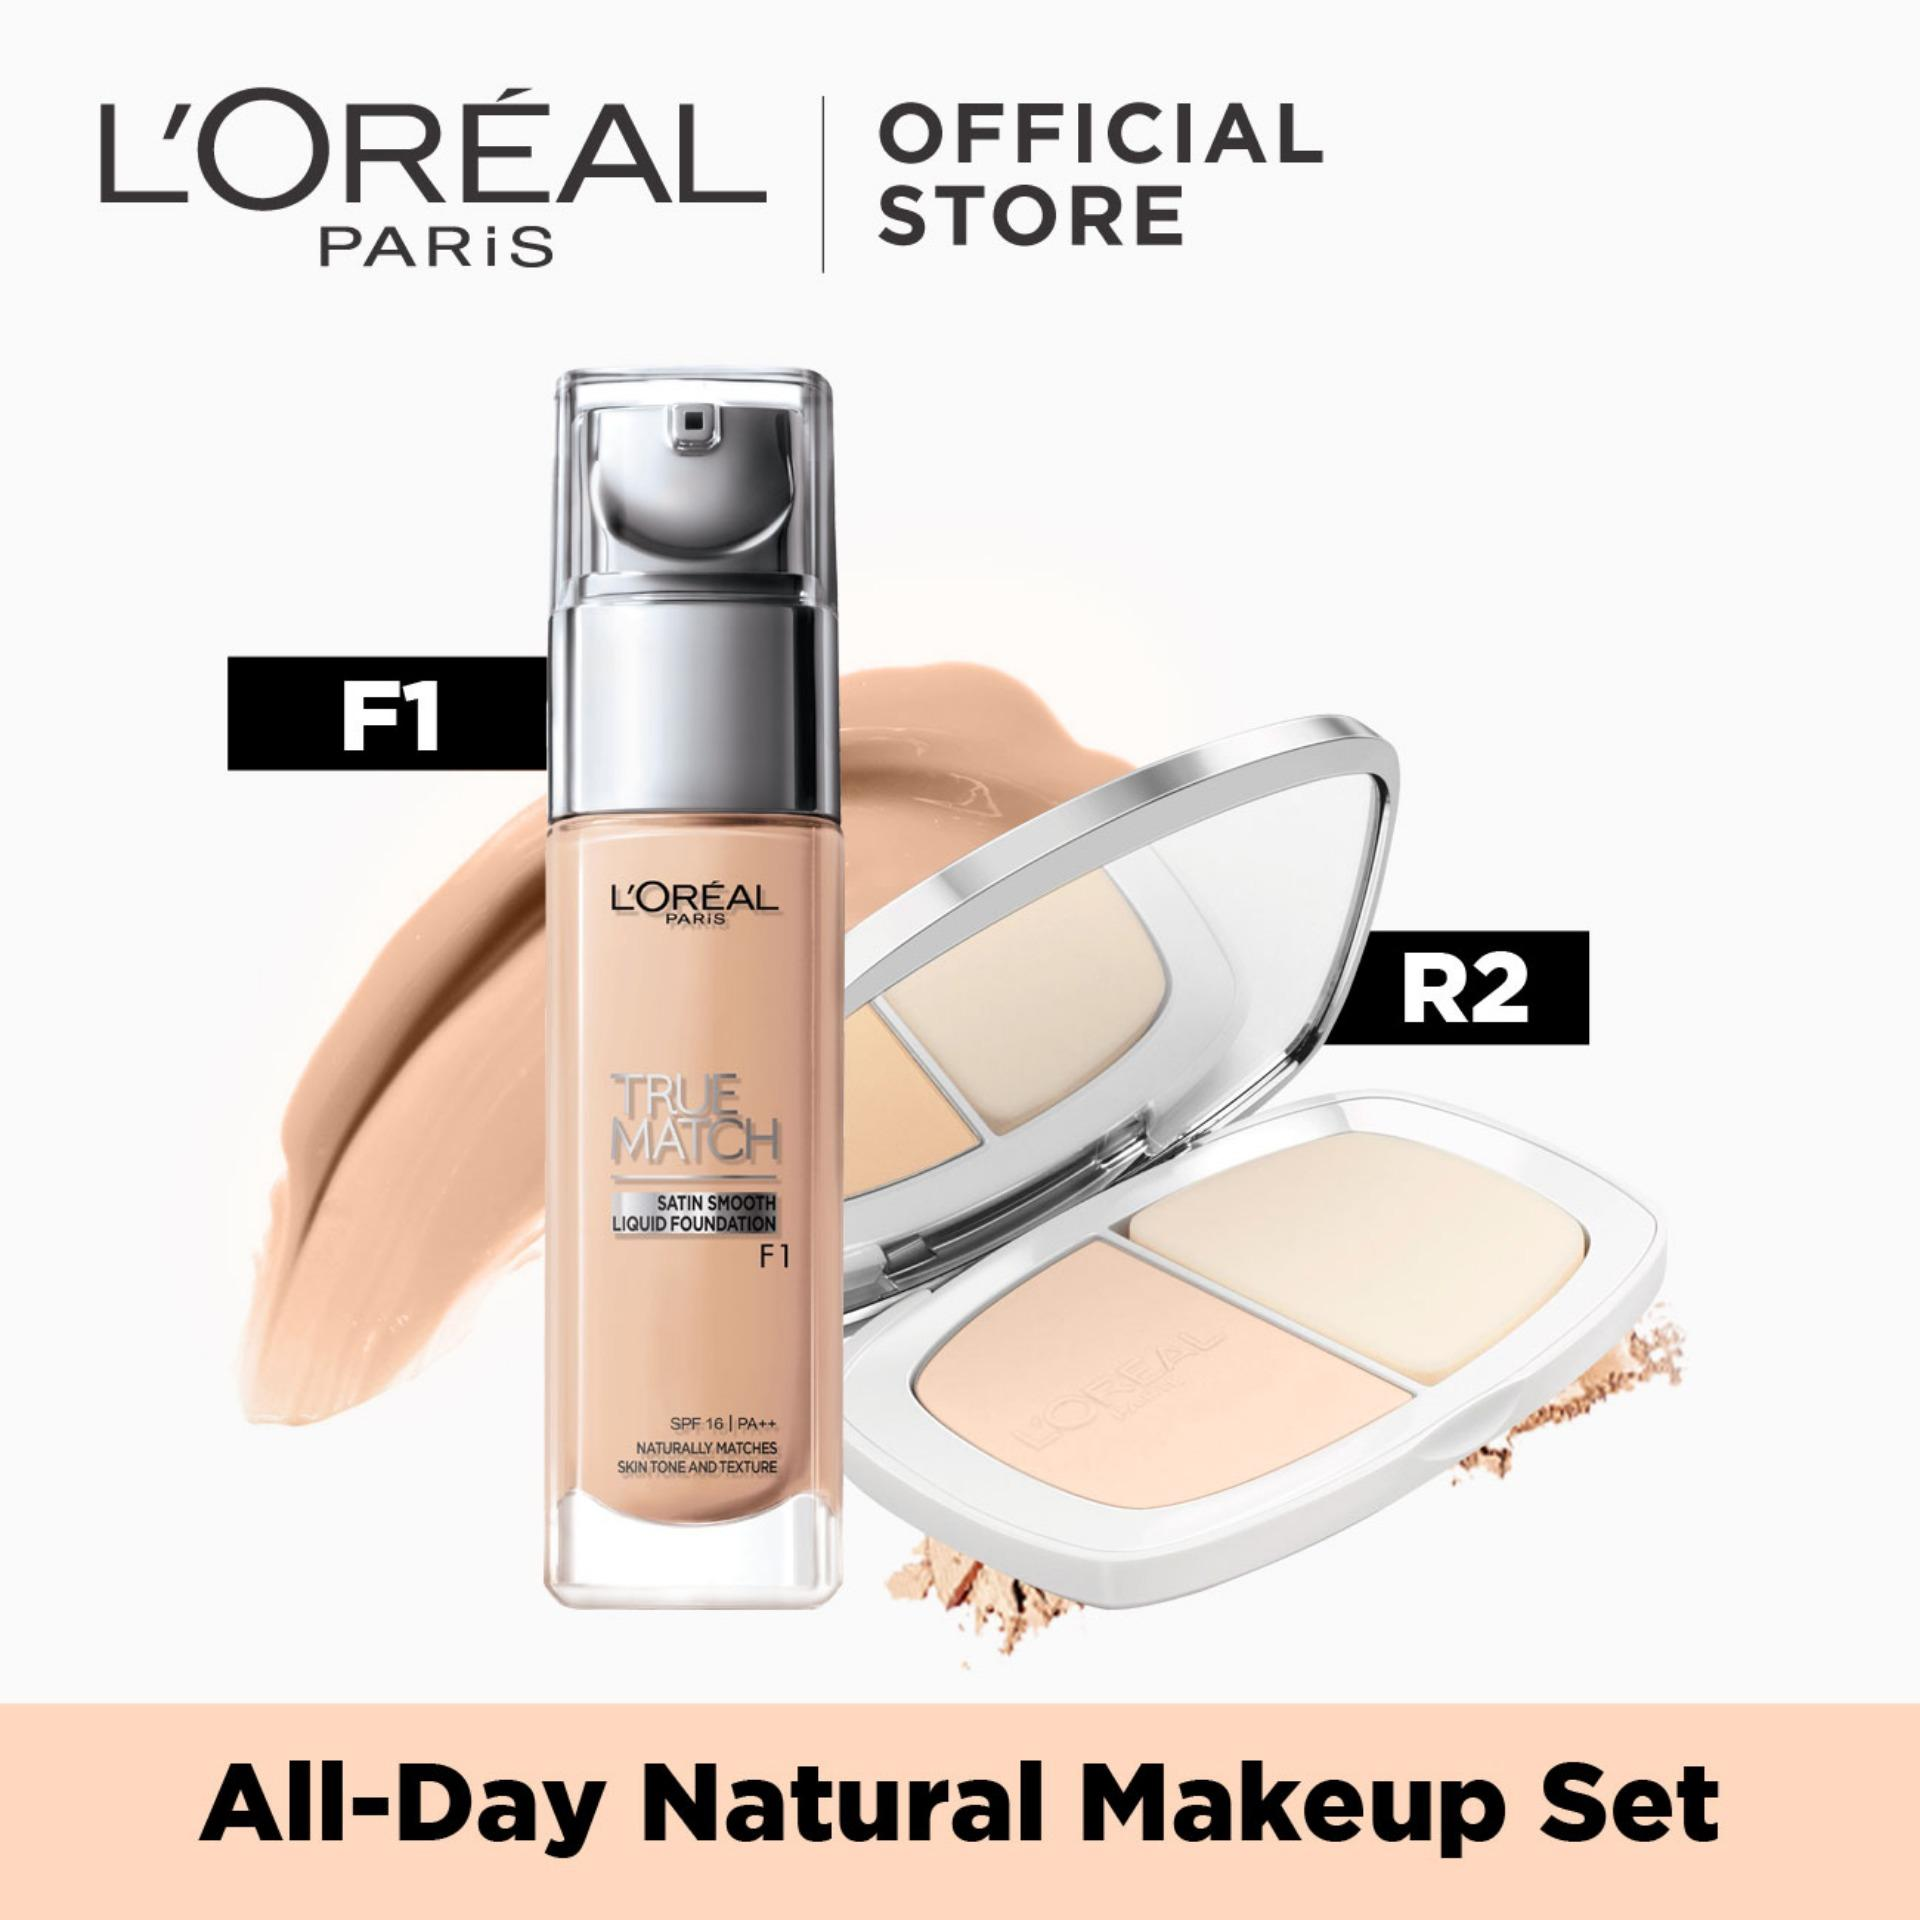 All Day Natural Set: True Match Liquid Foundation F1 & Powder R2 by LOréal Paris Philippines